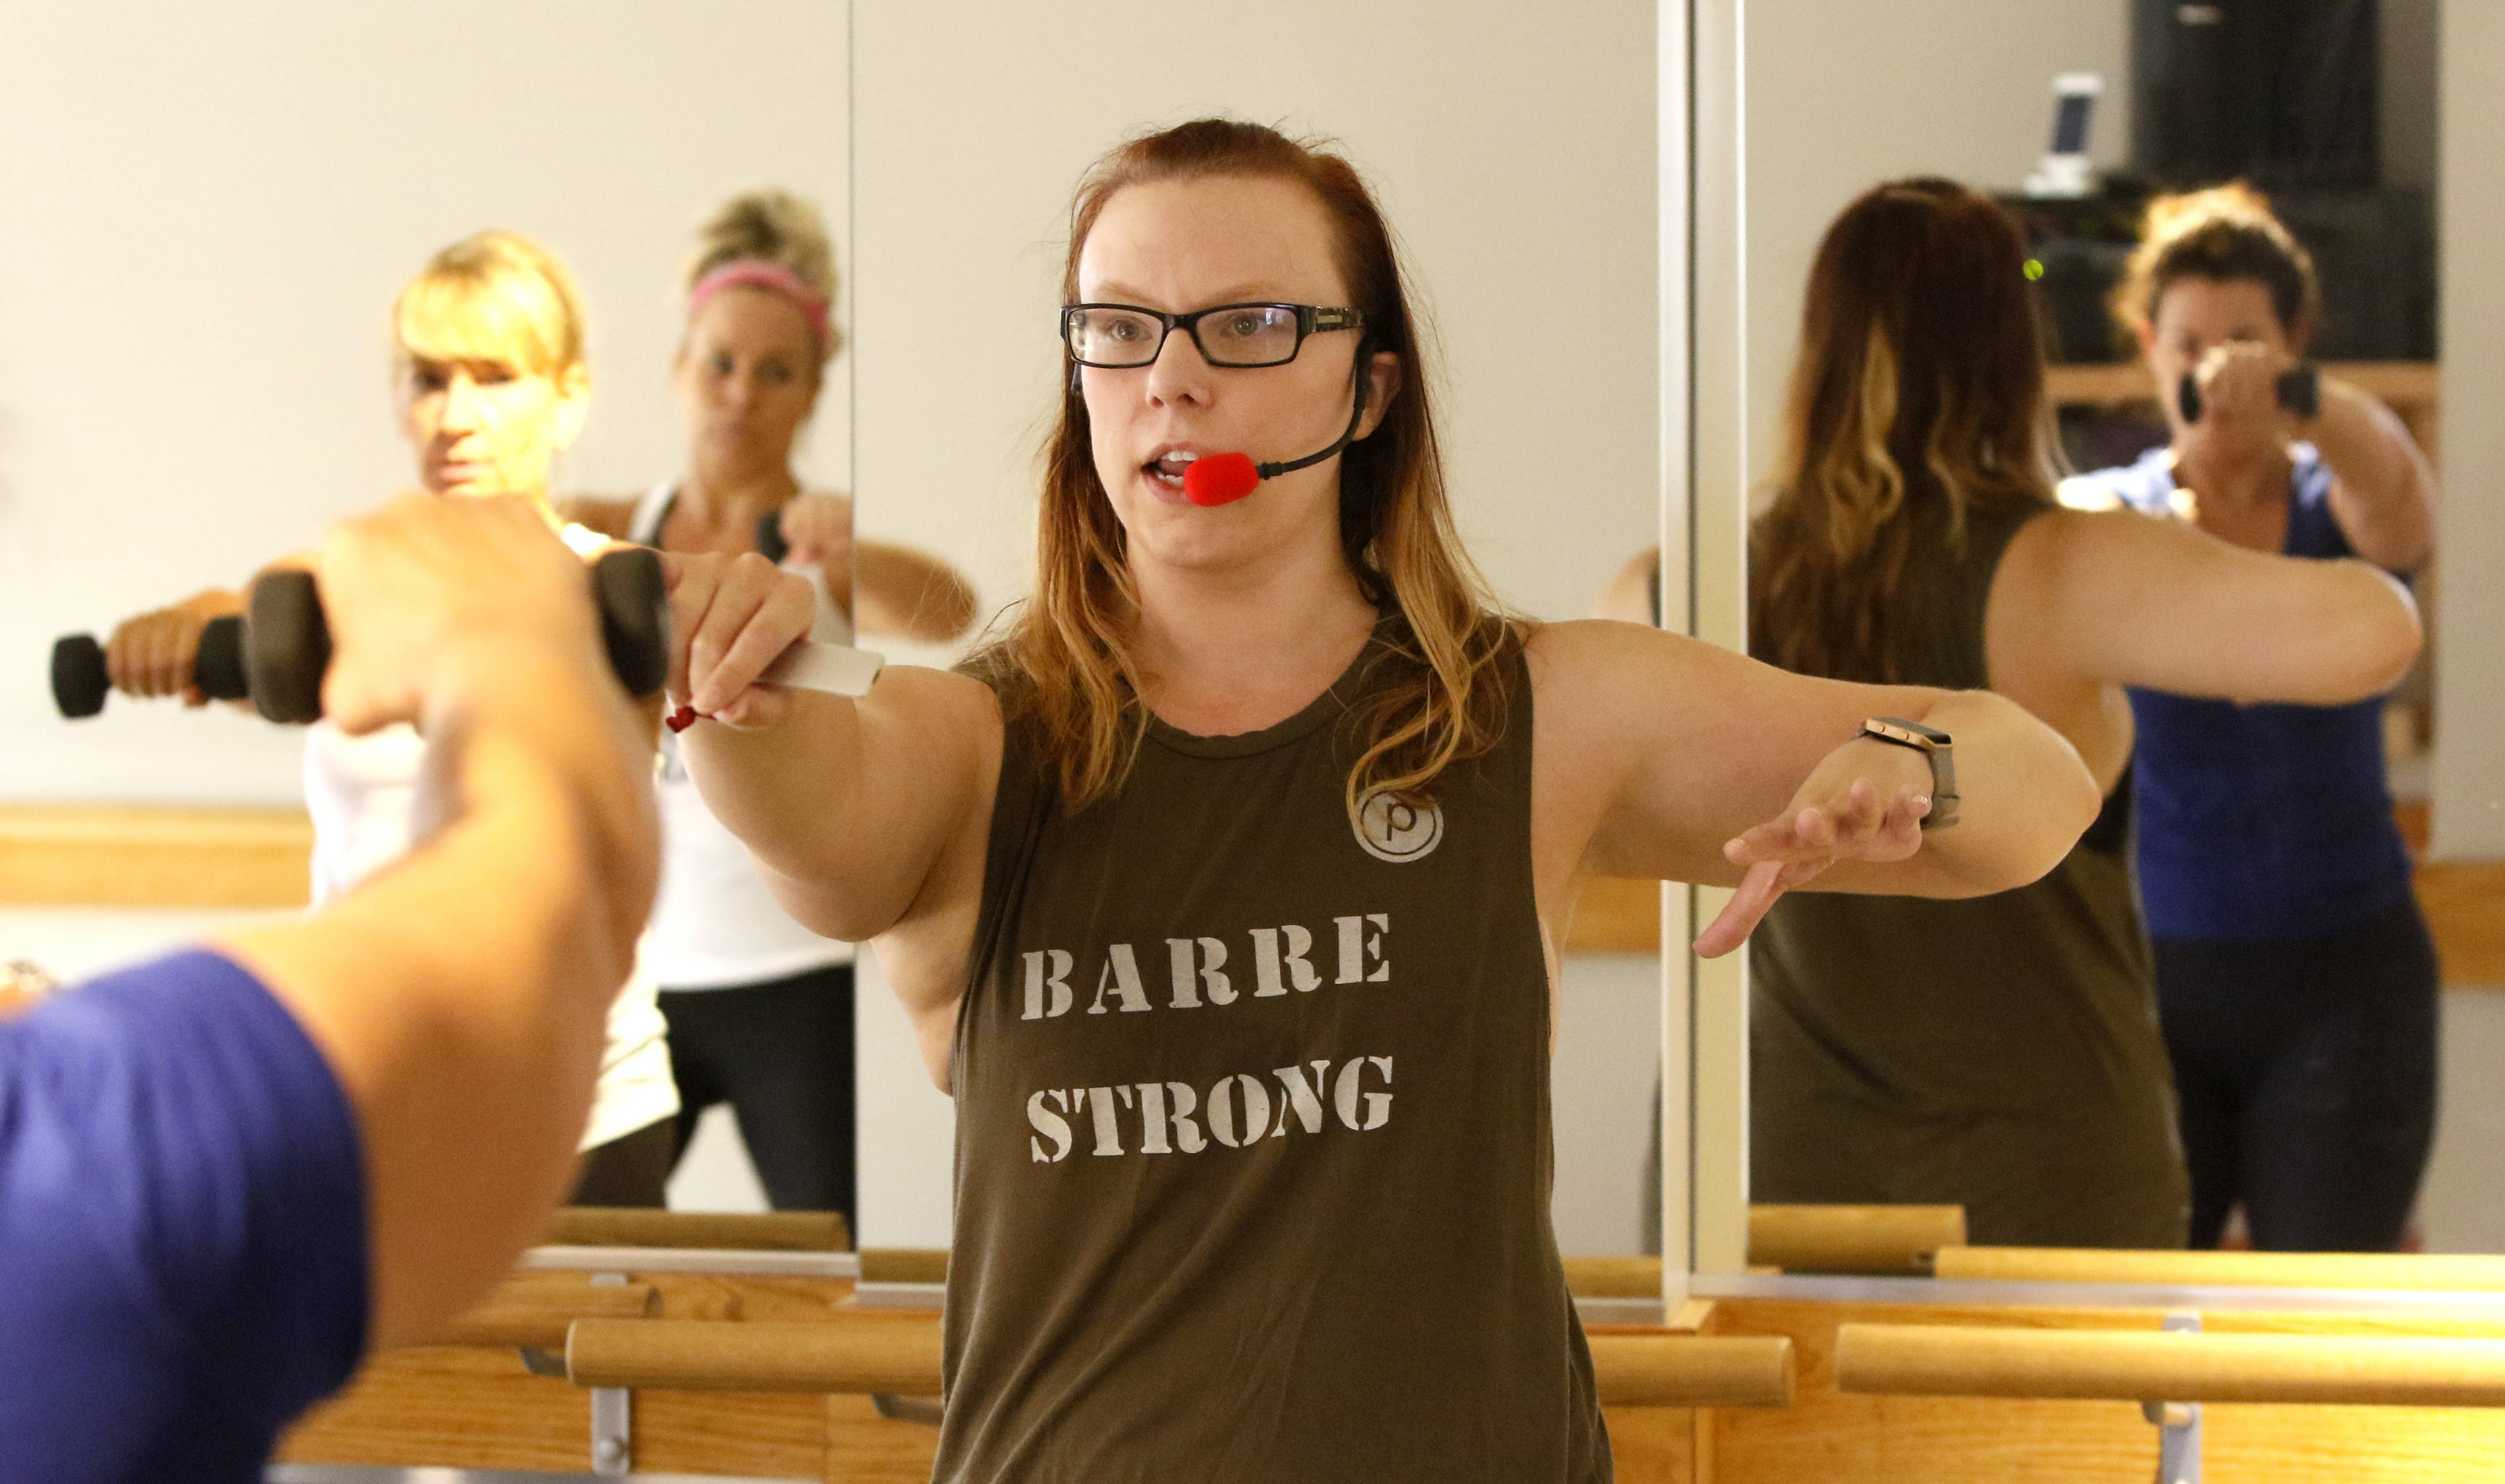 Naperville fitness studio moves up as hair salon moves in